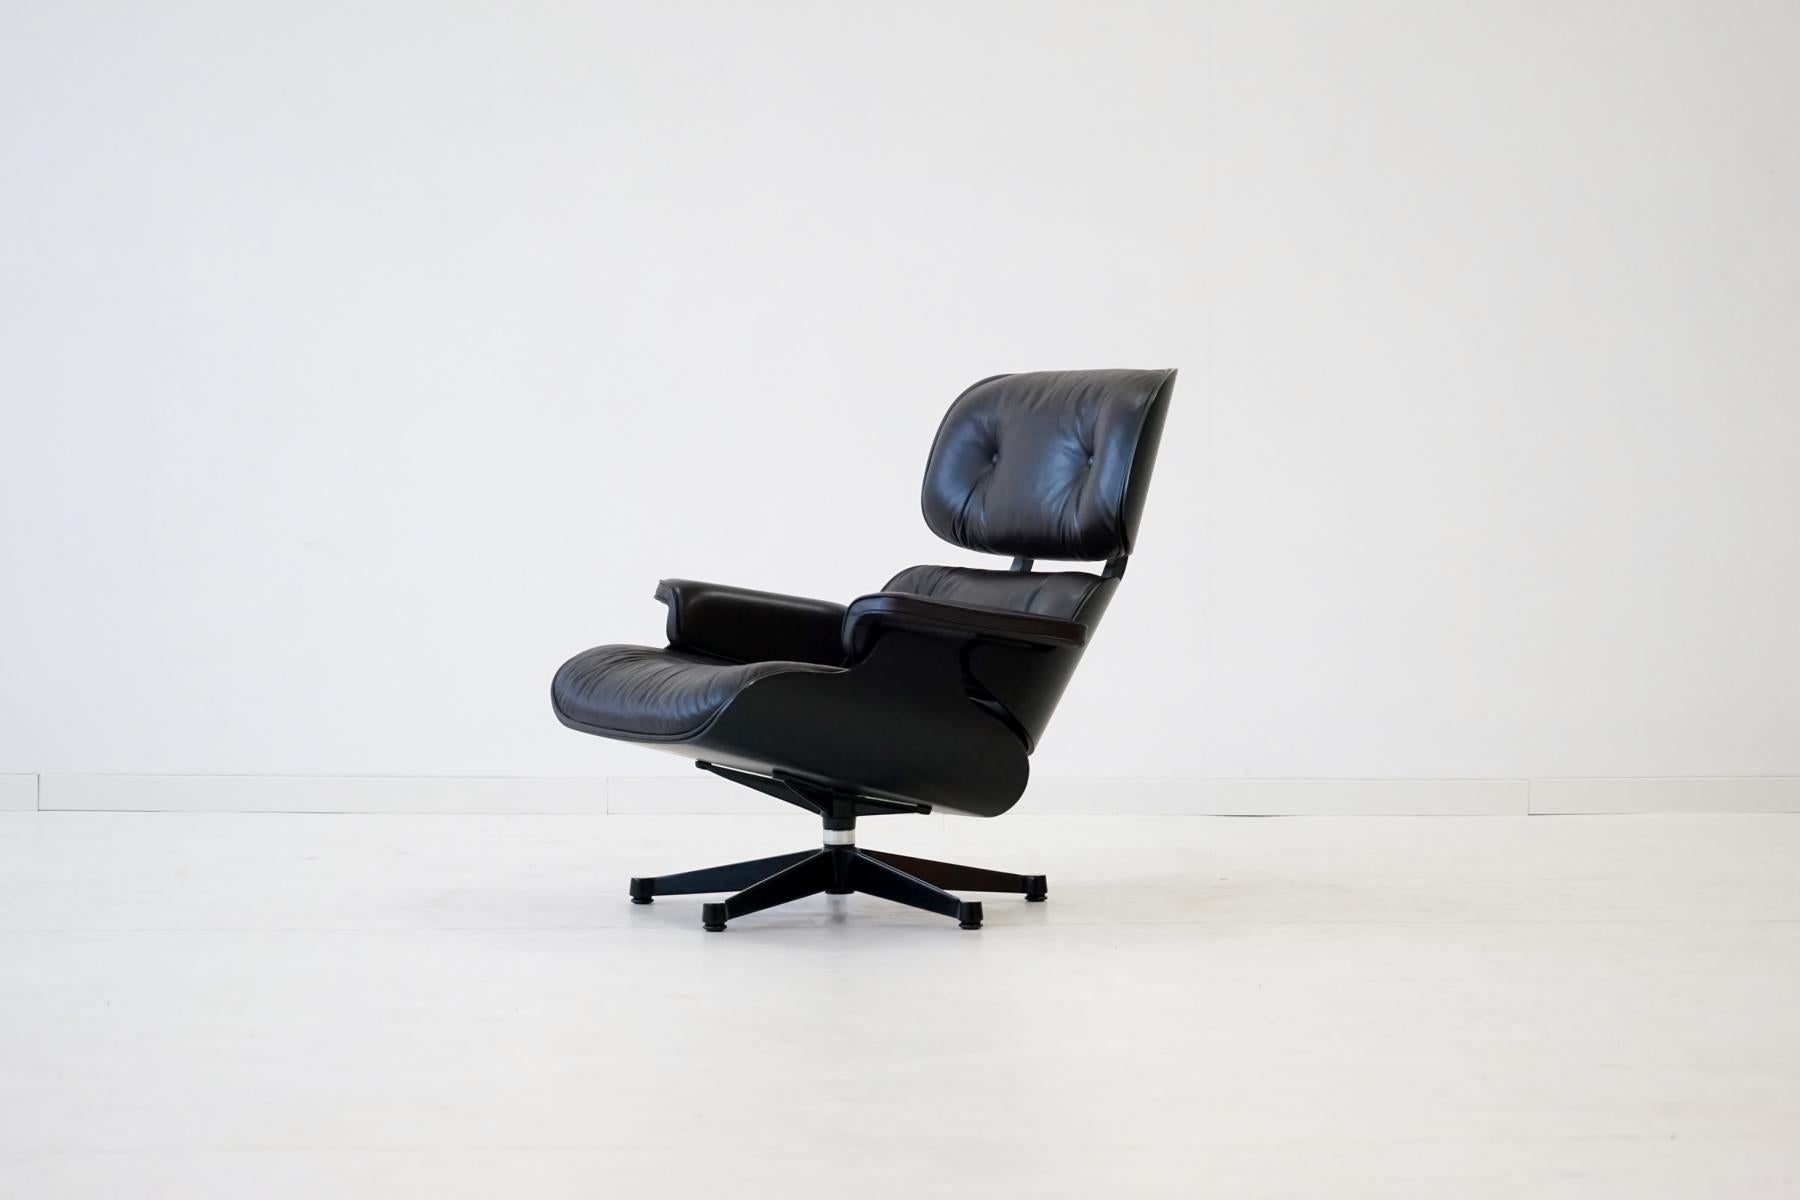 Original Lounge Chair By Charles Eames, Vitra, From Exhibition For Sale At  1stdibs